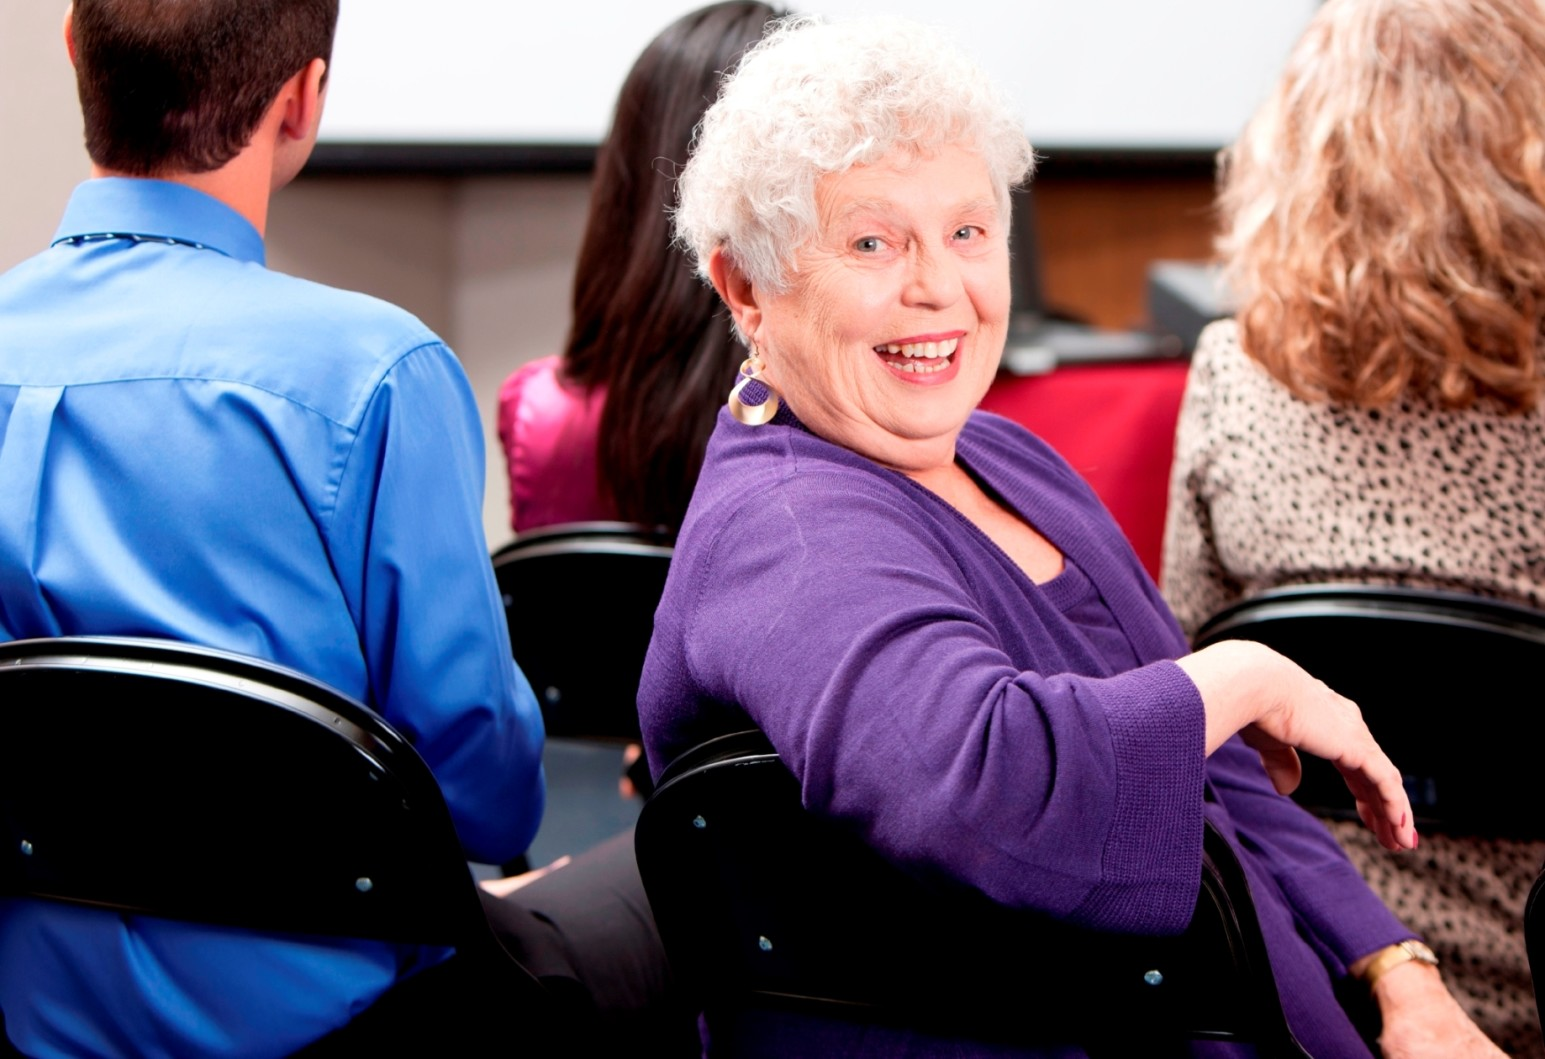 Real People:  Senior Adult Business Woman Presentation Small Group